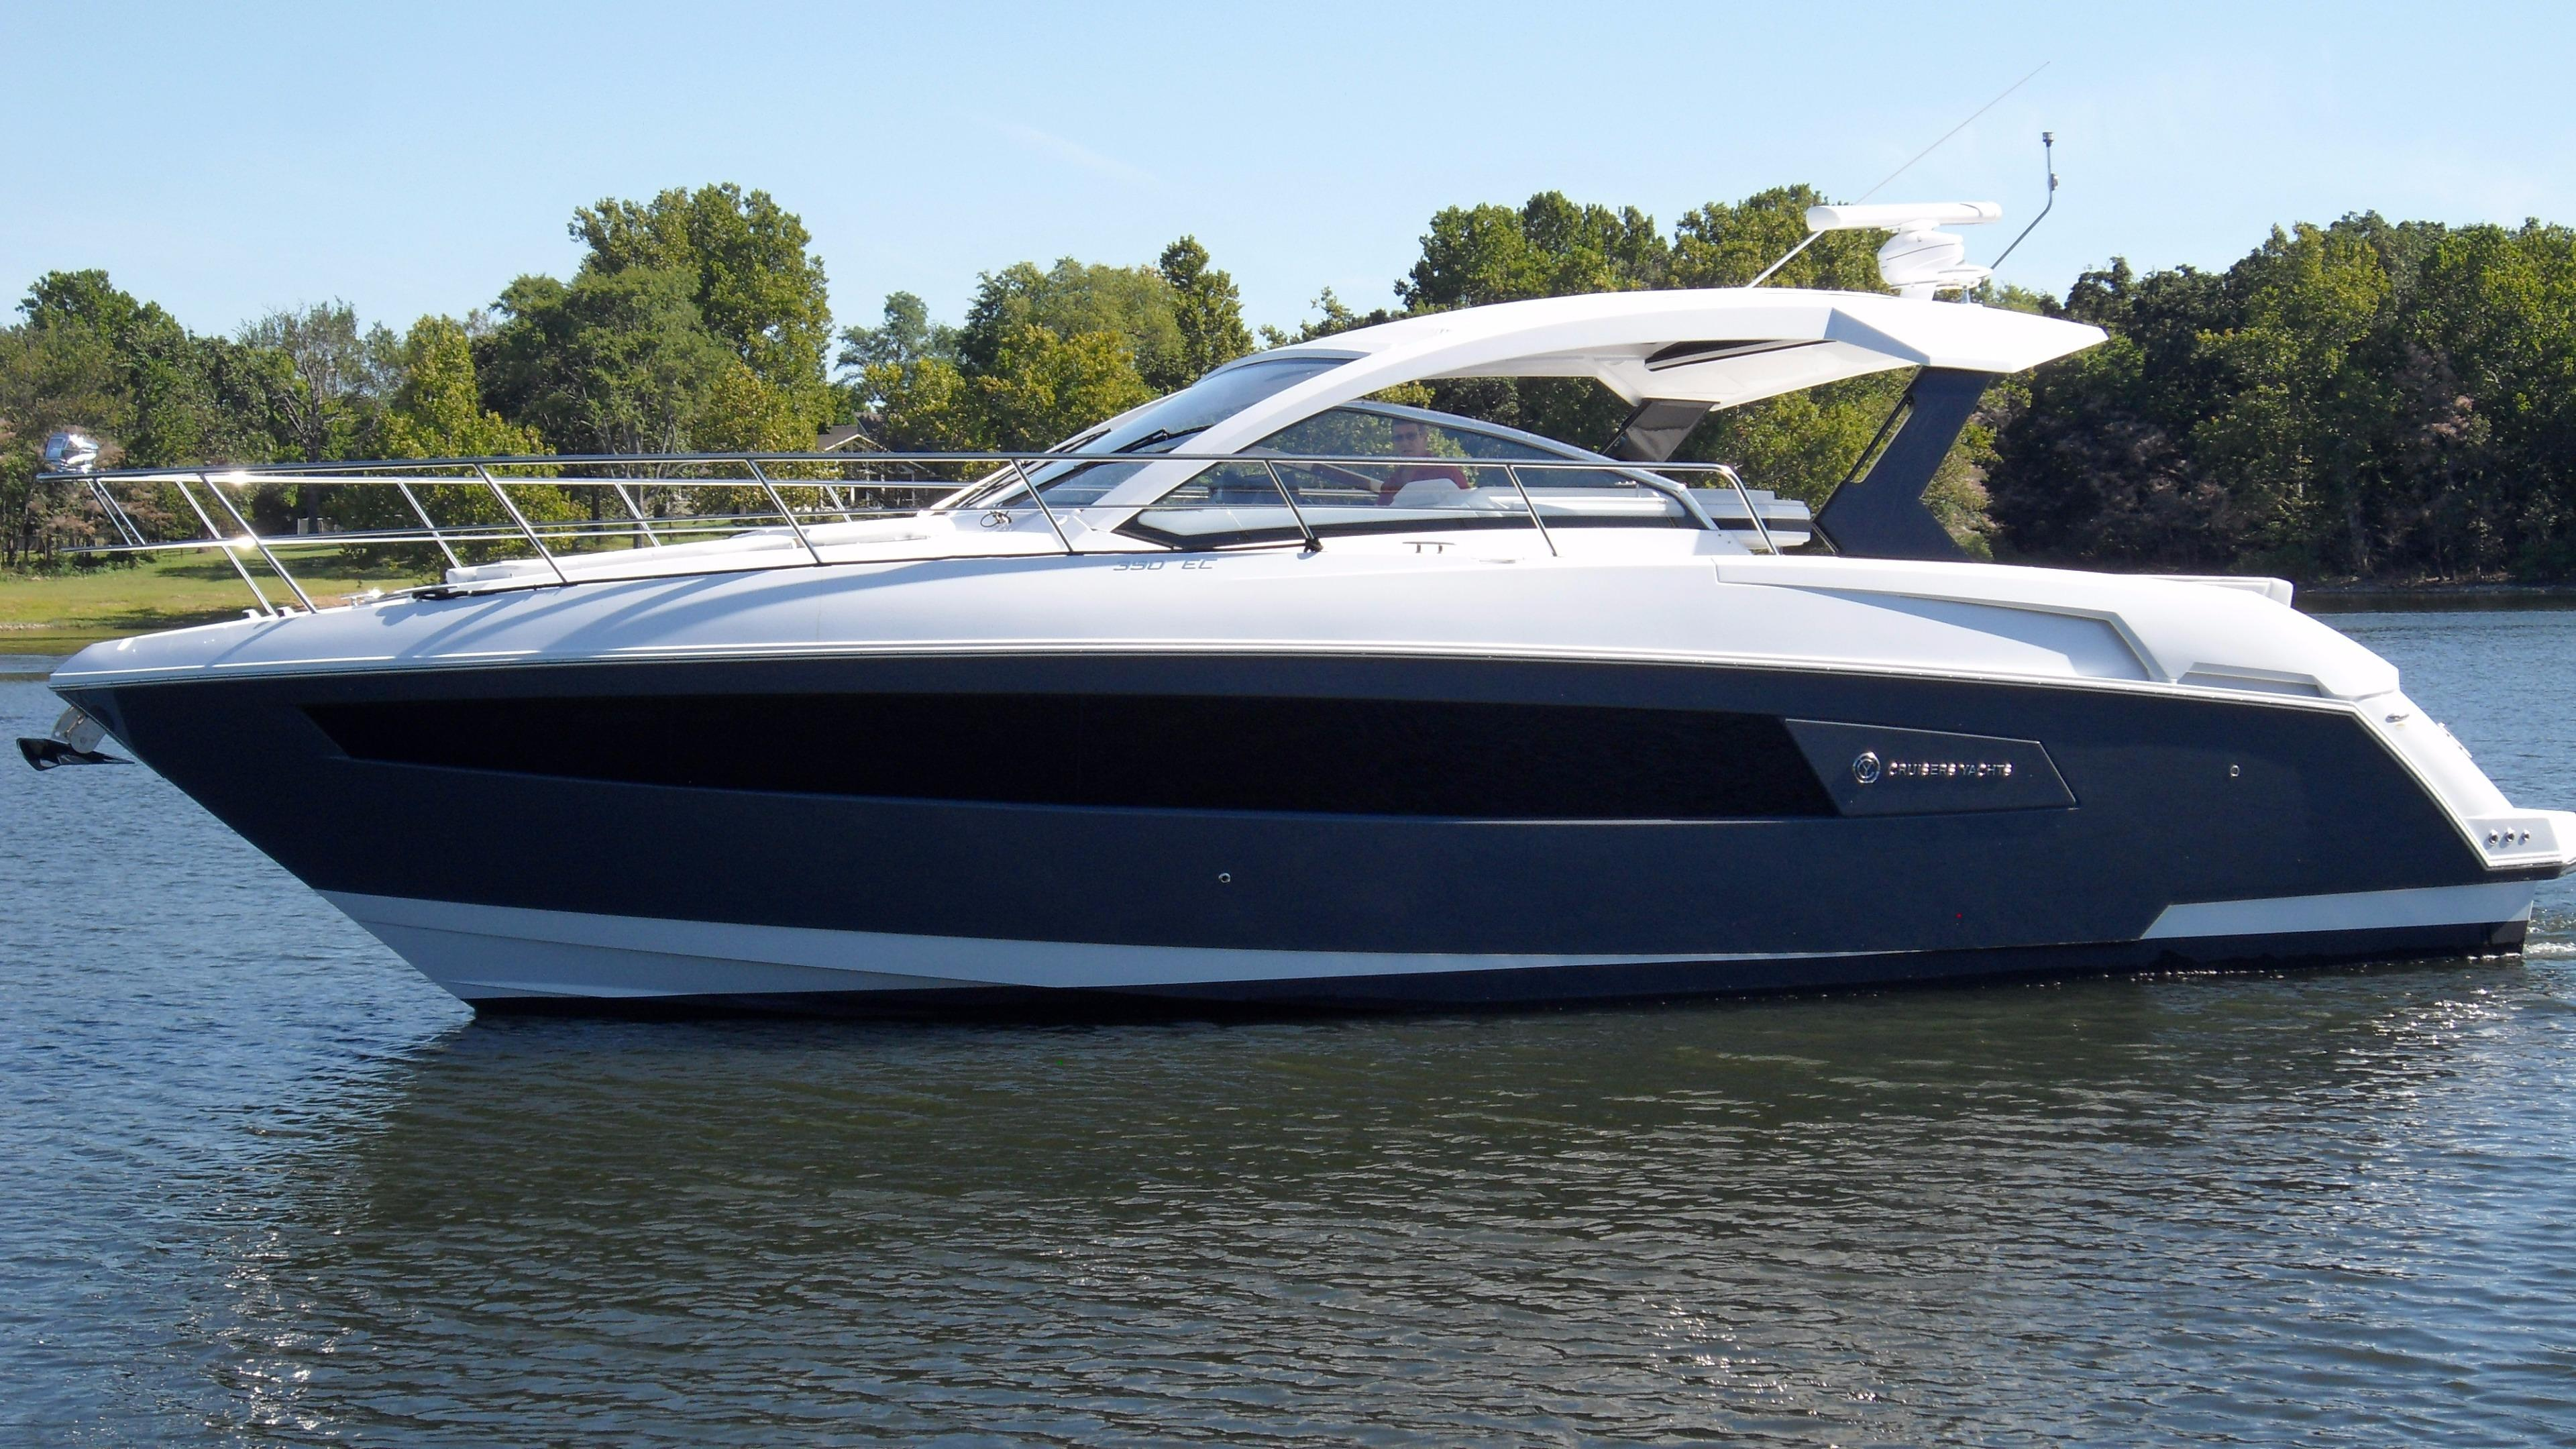 2016 Cruisers Yachts 390 Express Coupe Power Boat For Sale